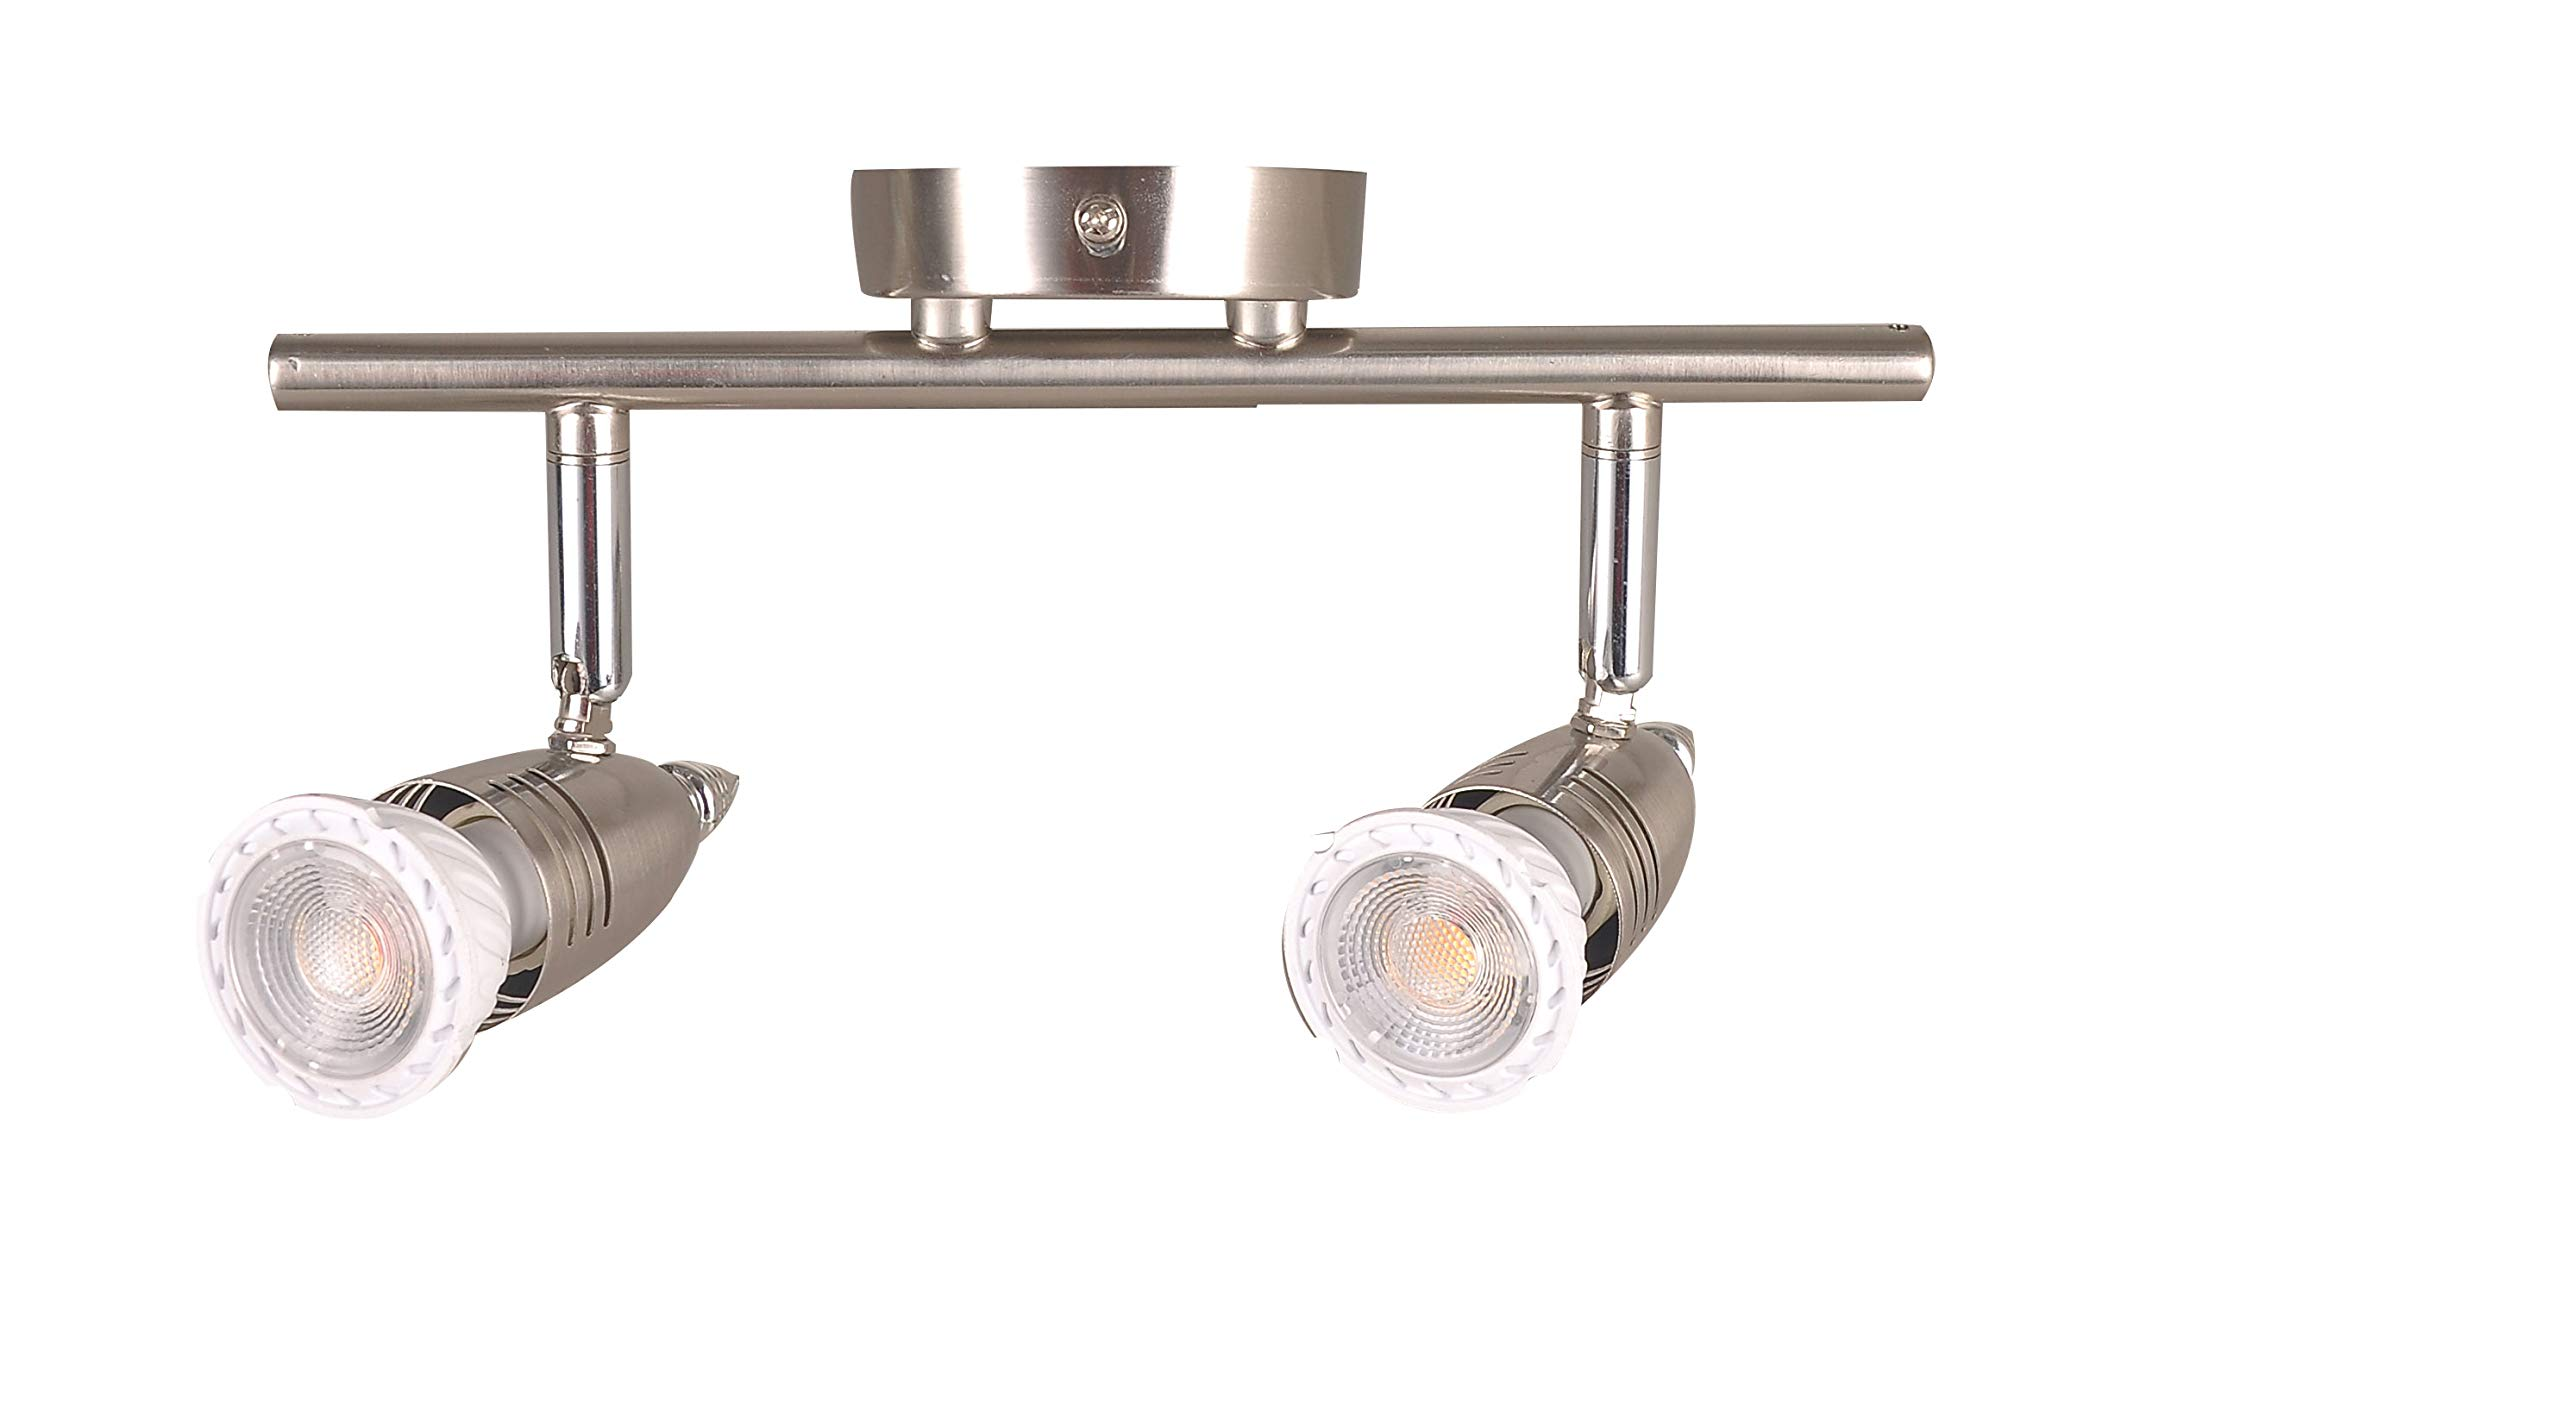 KIMYAN Two-Light Track Lighting Kit Plug in,Brushed Nickel,with On/Off Switch, with MR16GU10 LED Bulbs,Warm White,CRI90